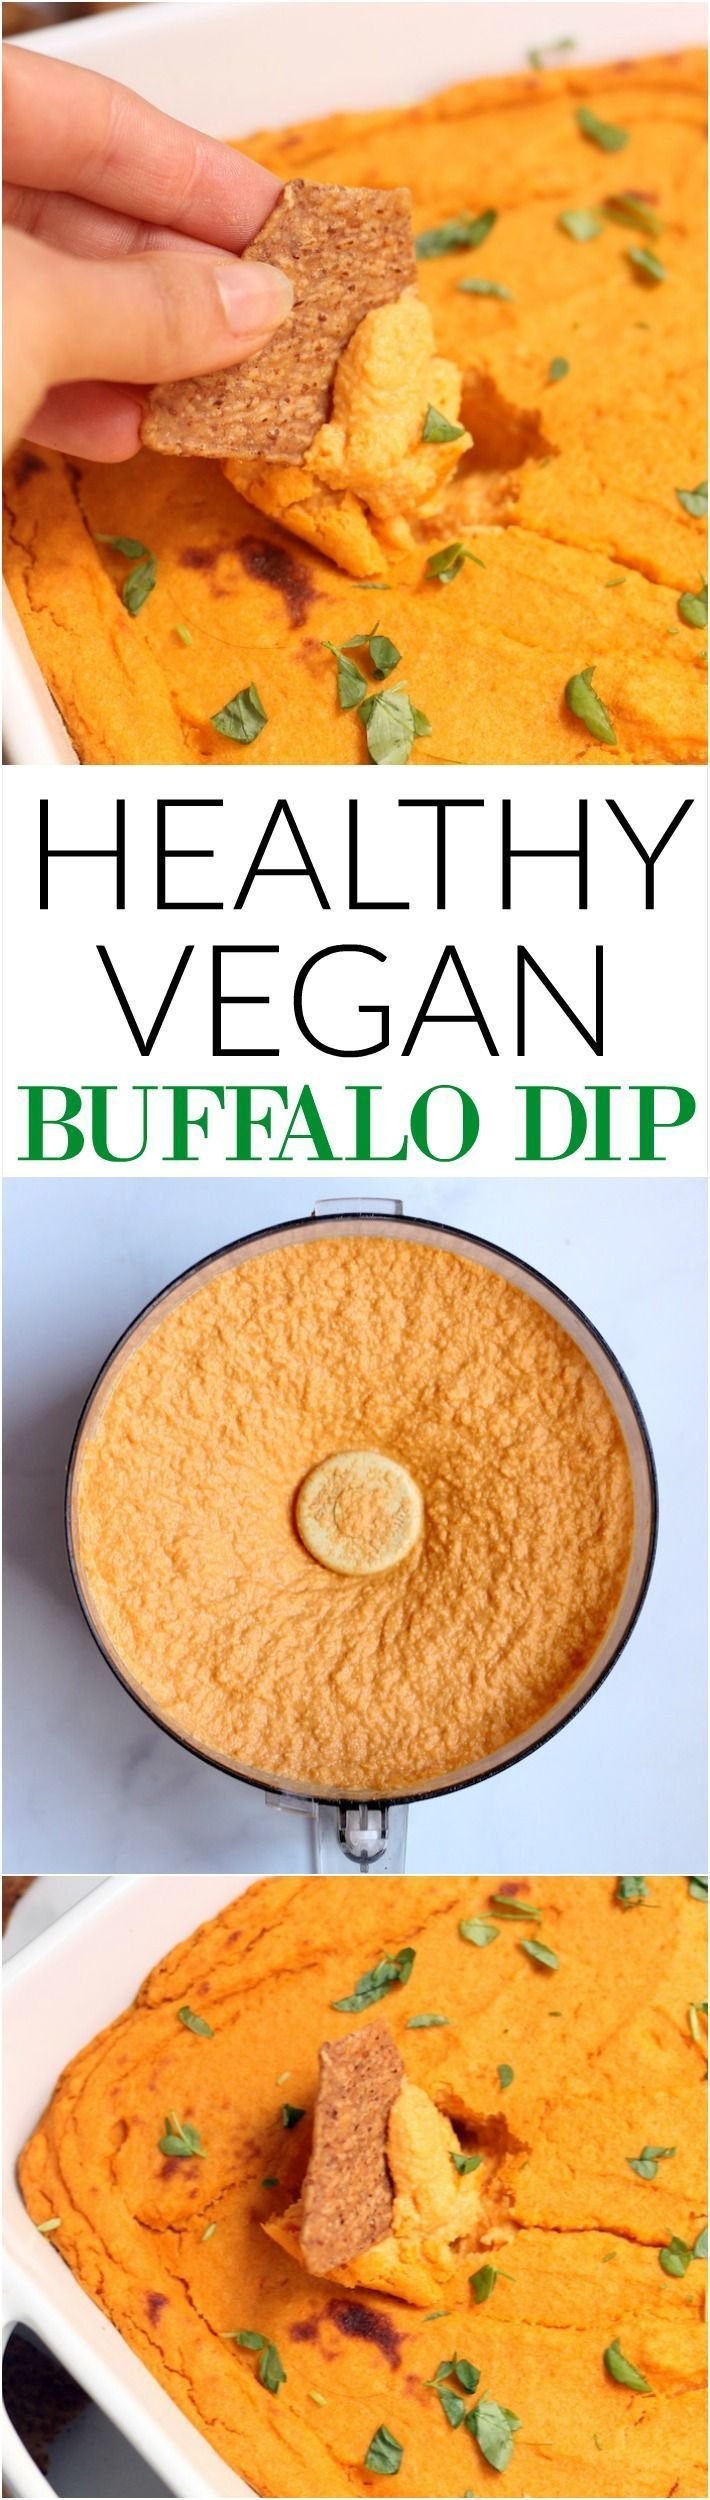 Vegan Buffalo Cauliflower Dip This addictive Healthy Vegan Buffalo Cauliflower Dip is super creamy decadent and secretly healthy  You  d never guess it was vegan gluten-free and packed with protein  Make it for the big game or as an appetizer for your next dinner party